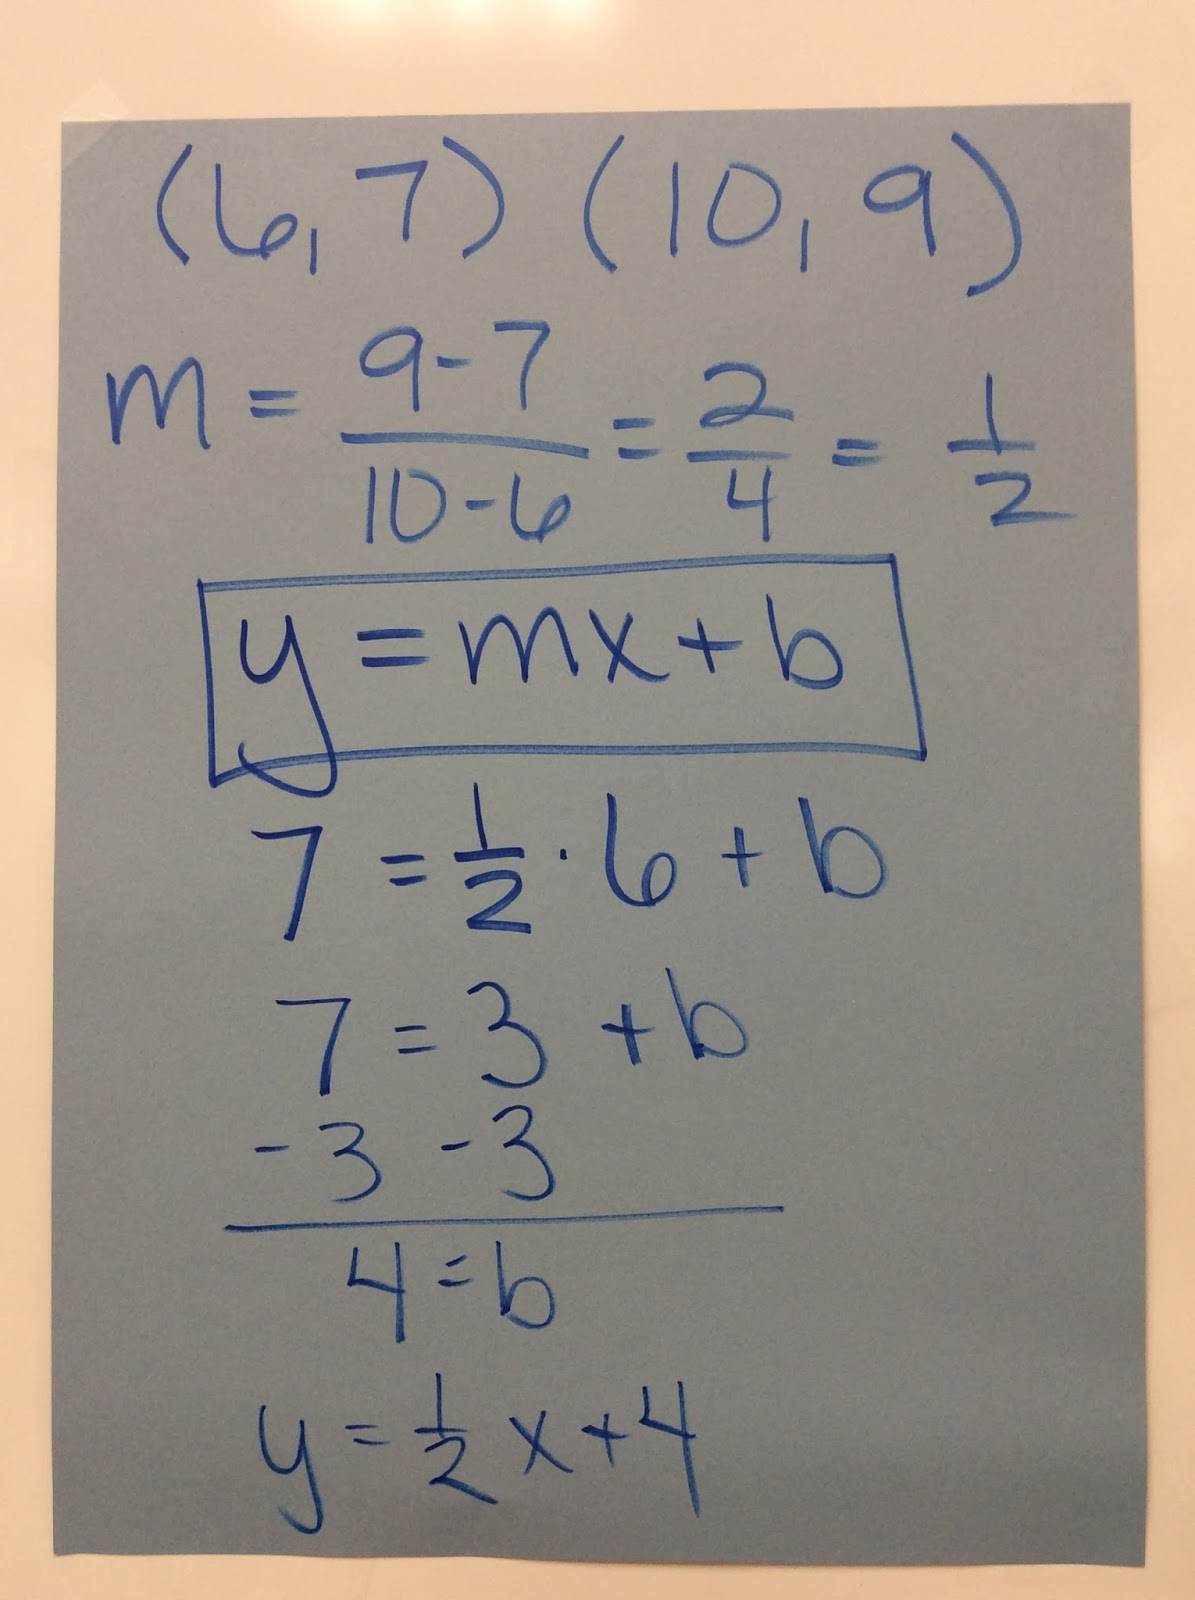 Simplifying Radicals Writing Equations Given Two Ordered